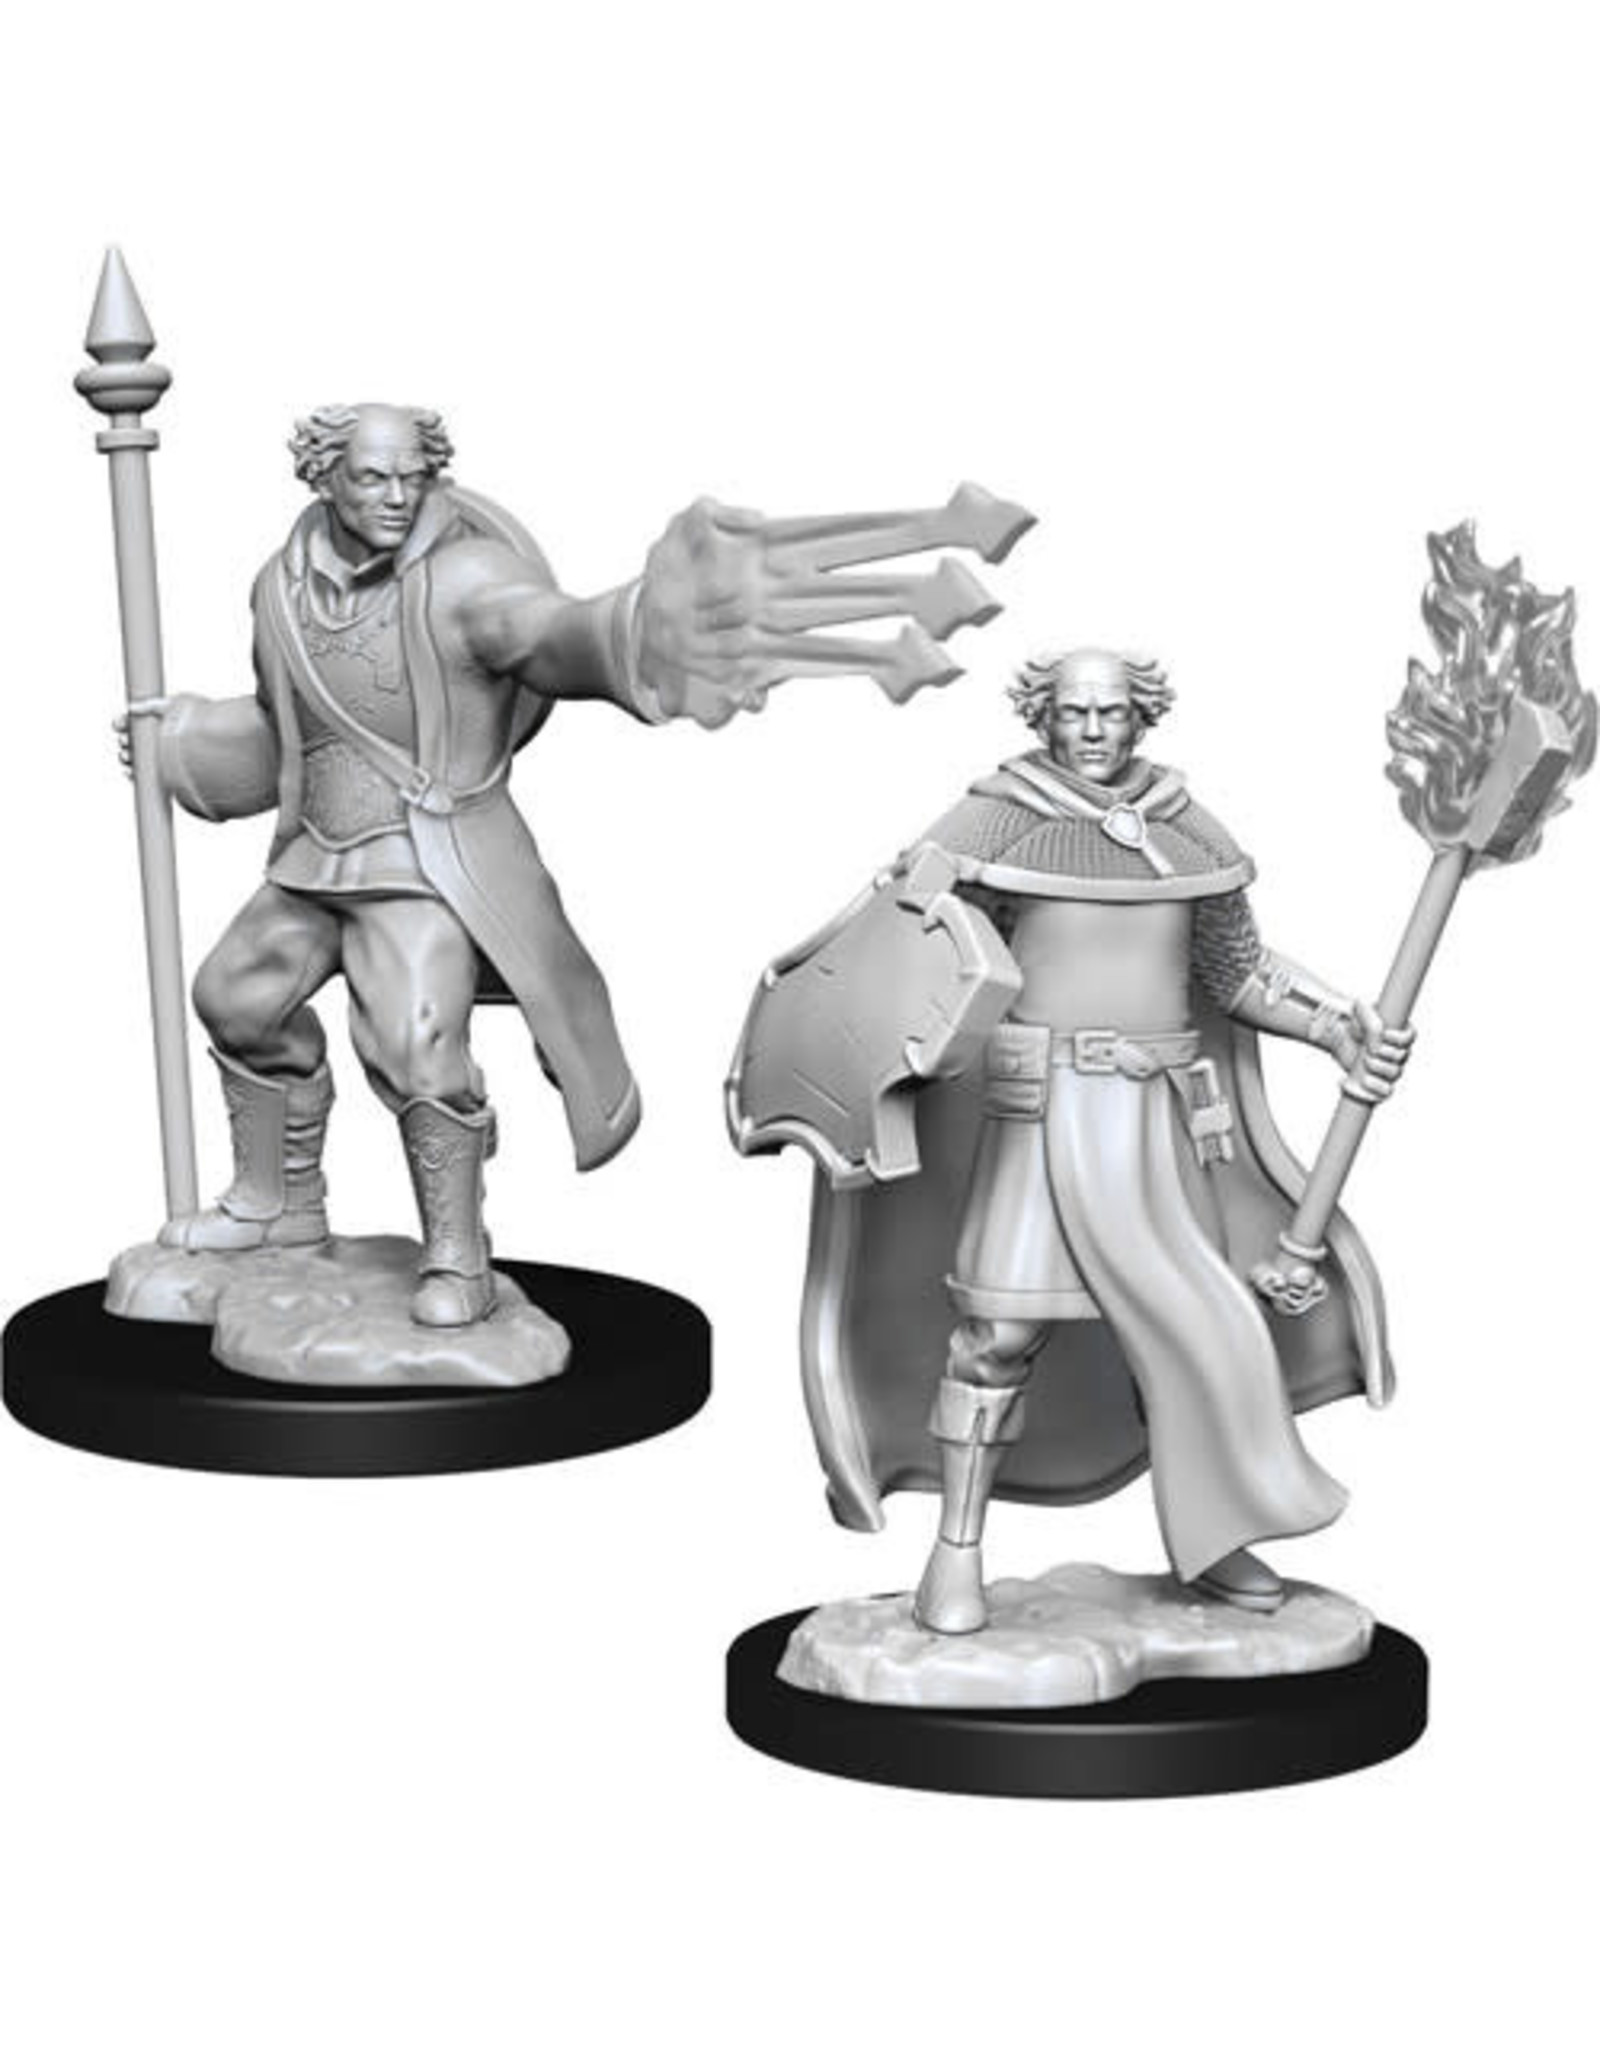 D&D Unpainted Minis: Multiclass Cleric + Wizard Male (Wave 13)